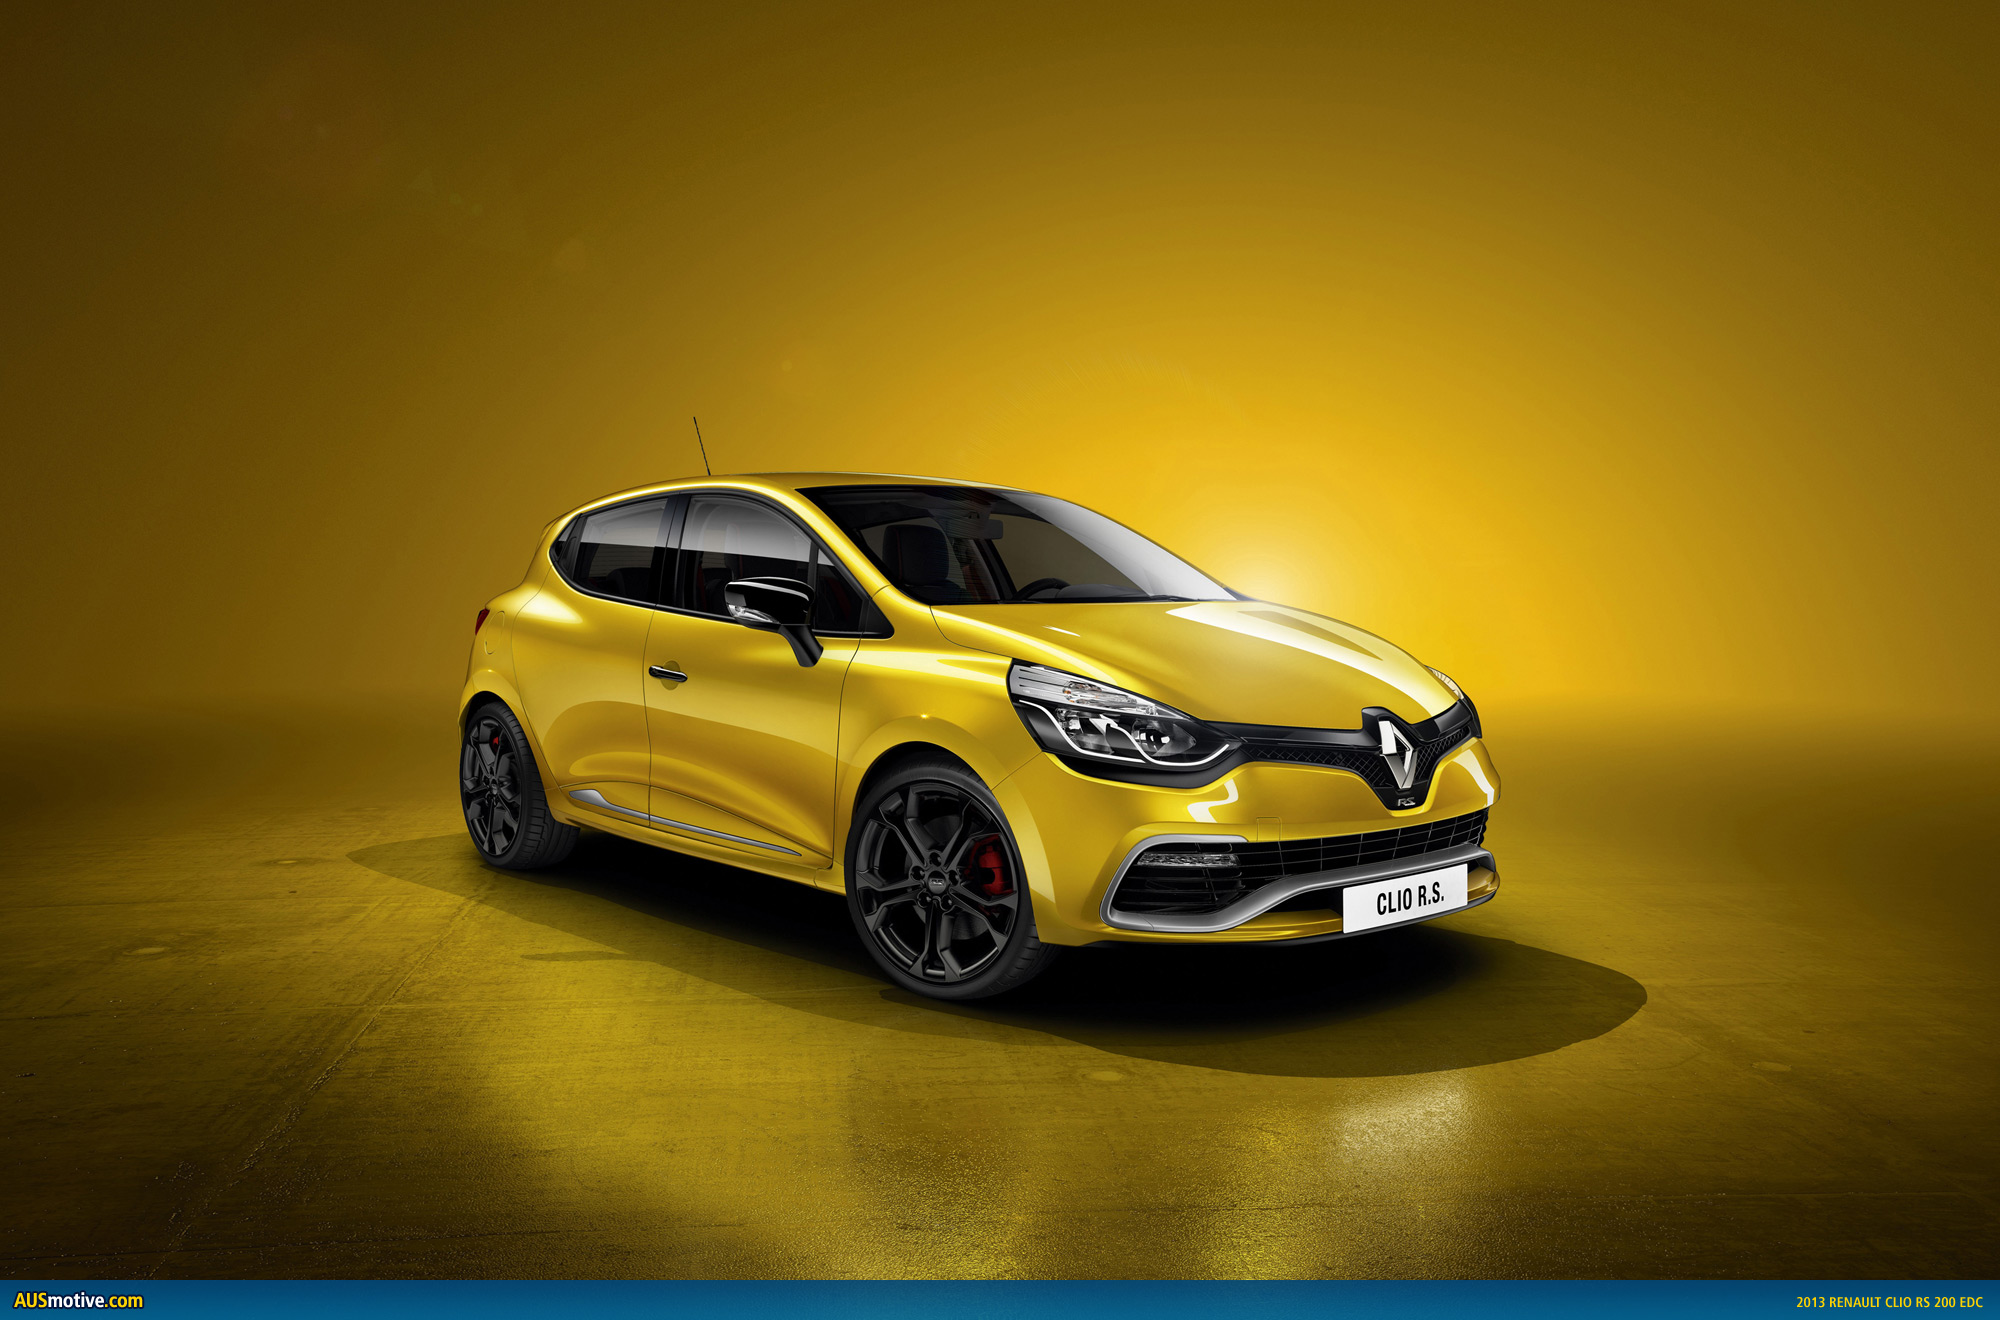 paris 2012 renault clio rs 200 edc. Black Bedroom Furniture Sets. Home Design Ideas